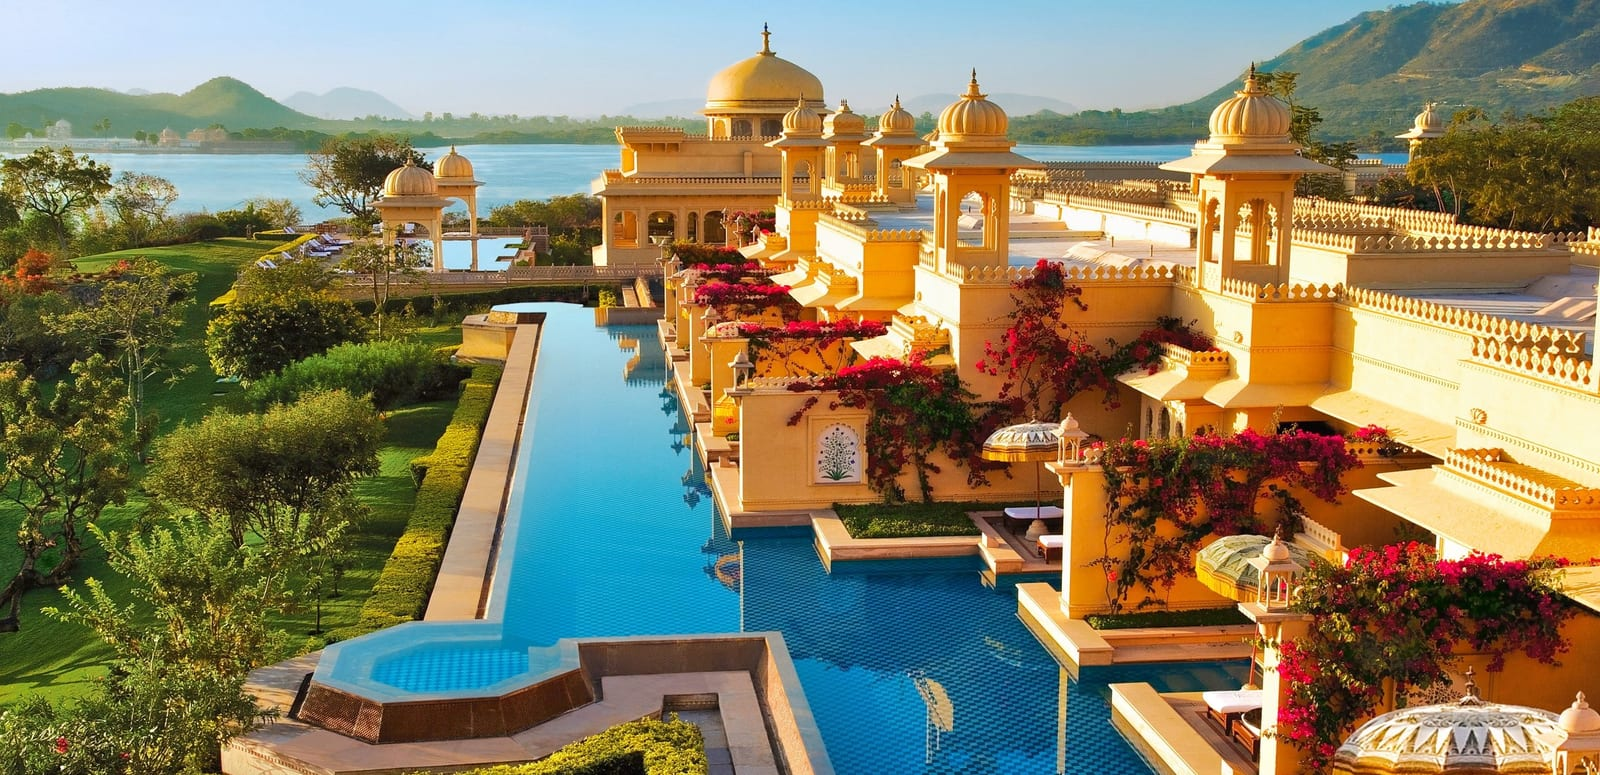 5 Things to do in Udaipur